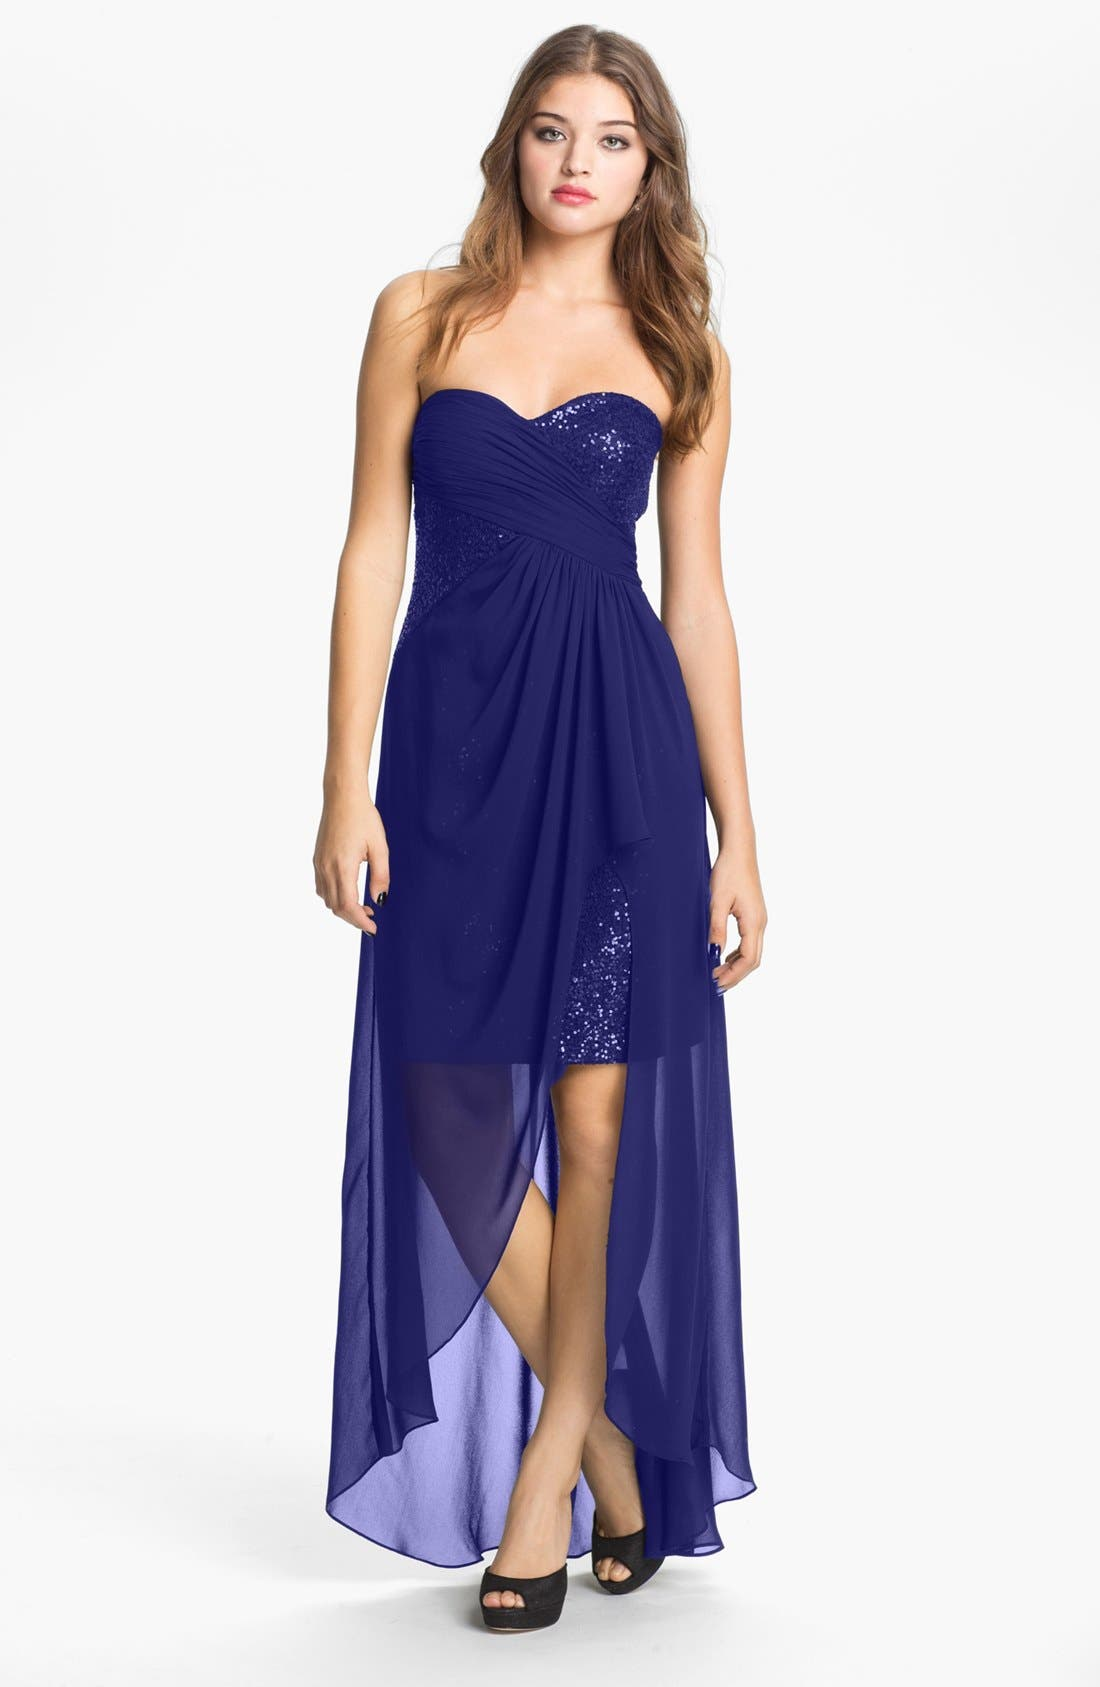 Main Image - Hailey by Adrianna Papell Strapless Sequin Chiffon Overlay Gown (Online Only)